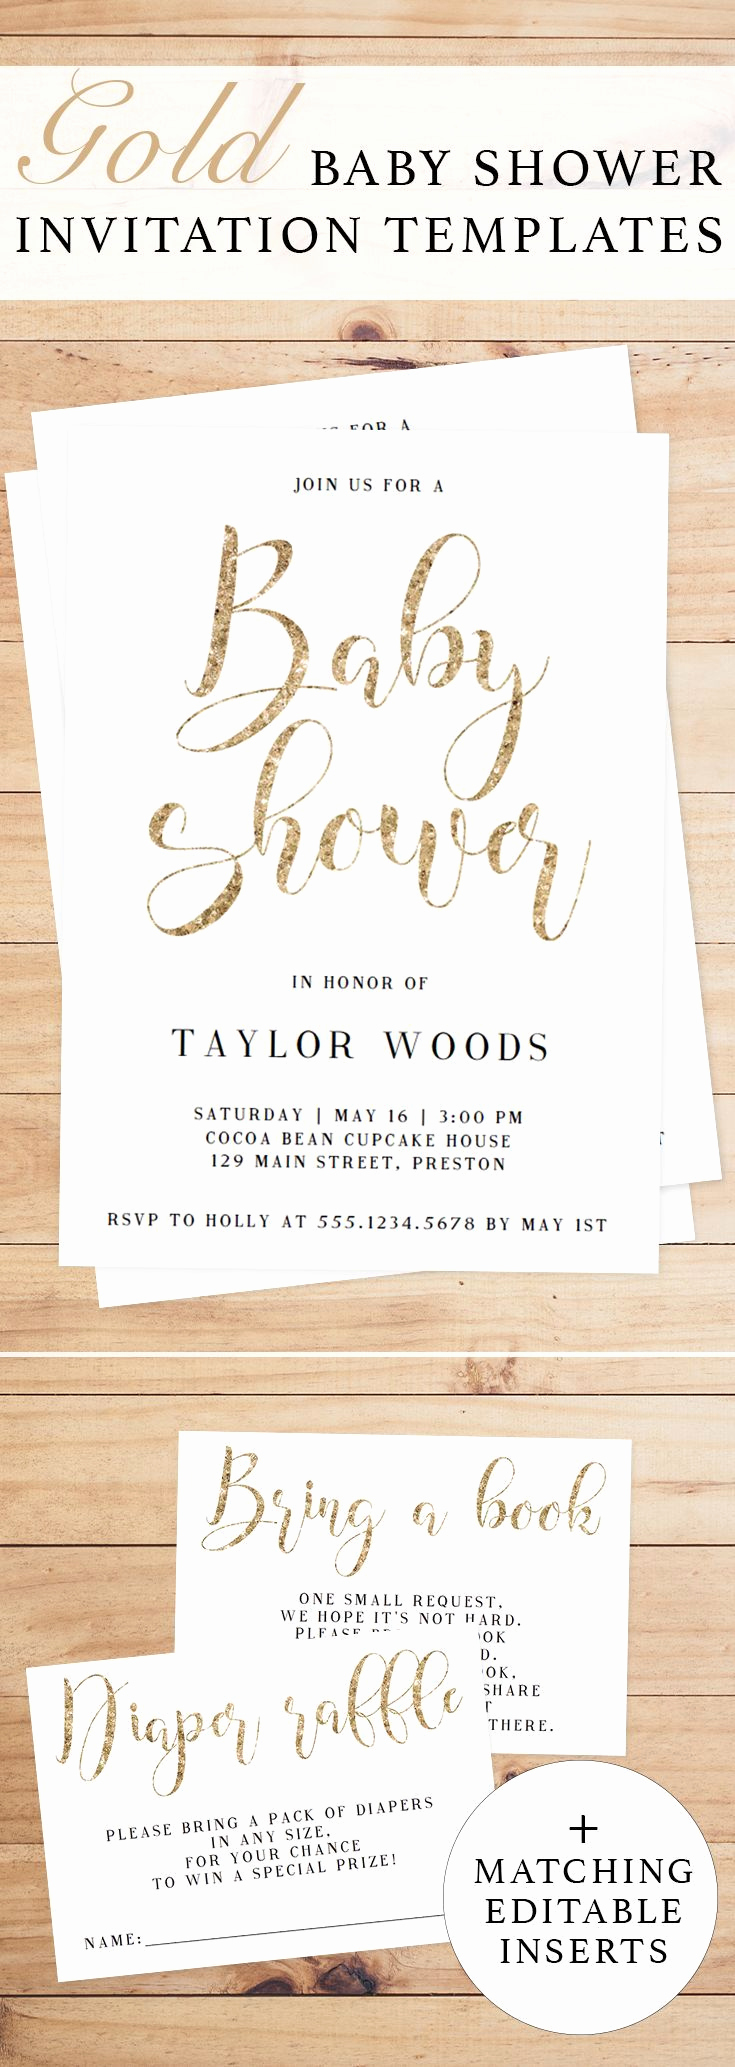 Baby Shower Invitation Examples Lovely Best 25 Baby Shower Templates Ideas On Pinterest